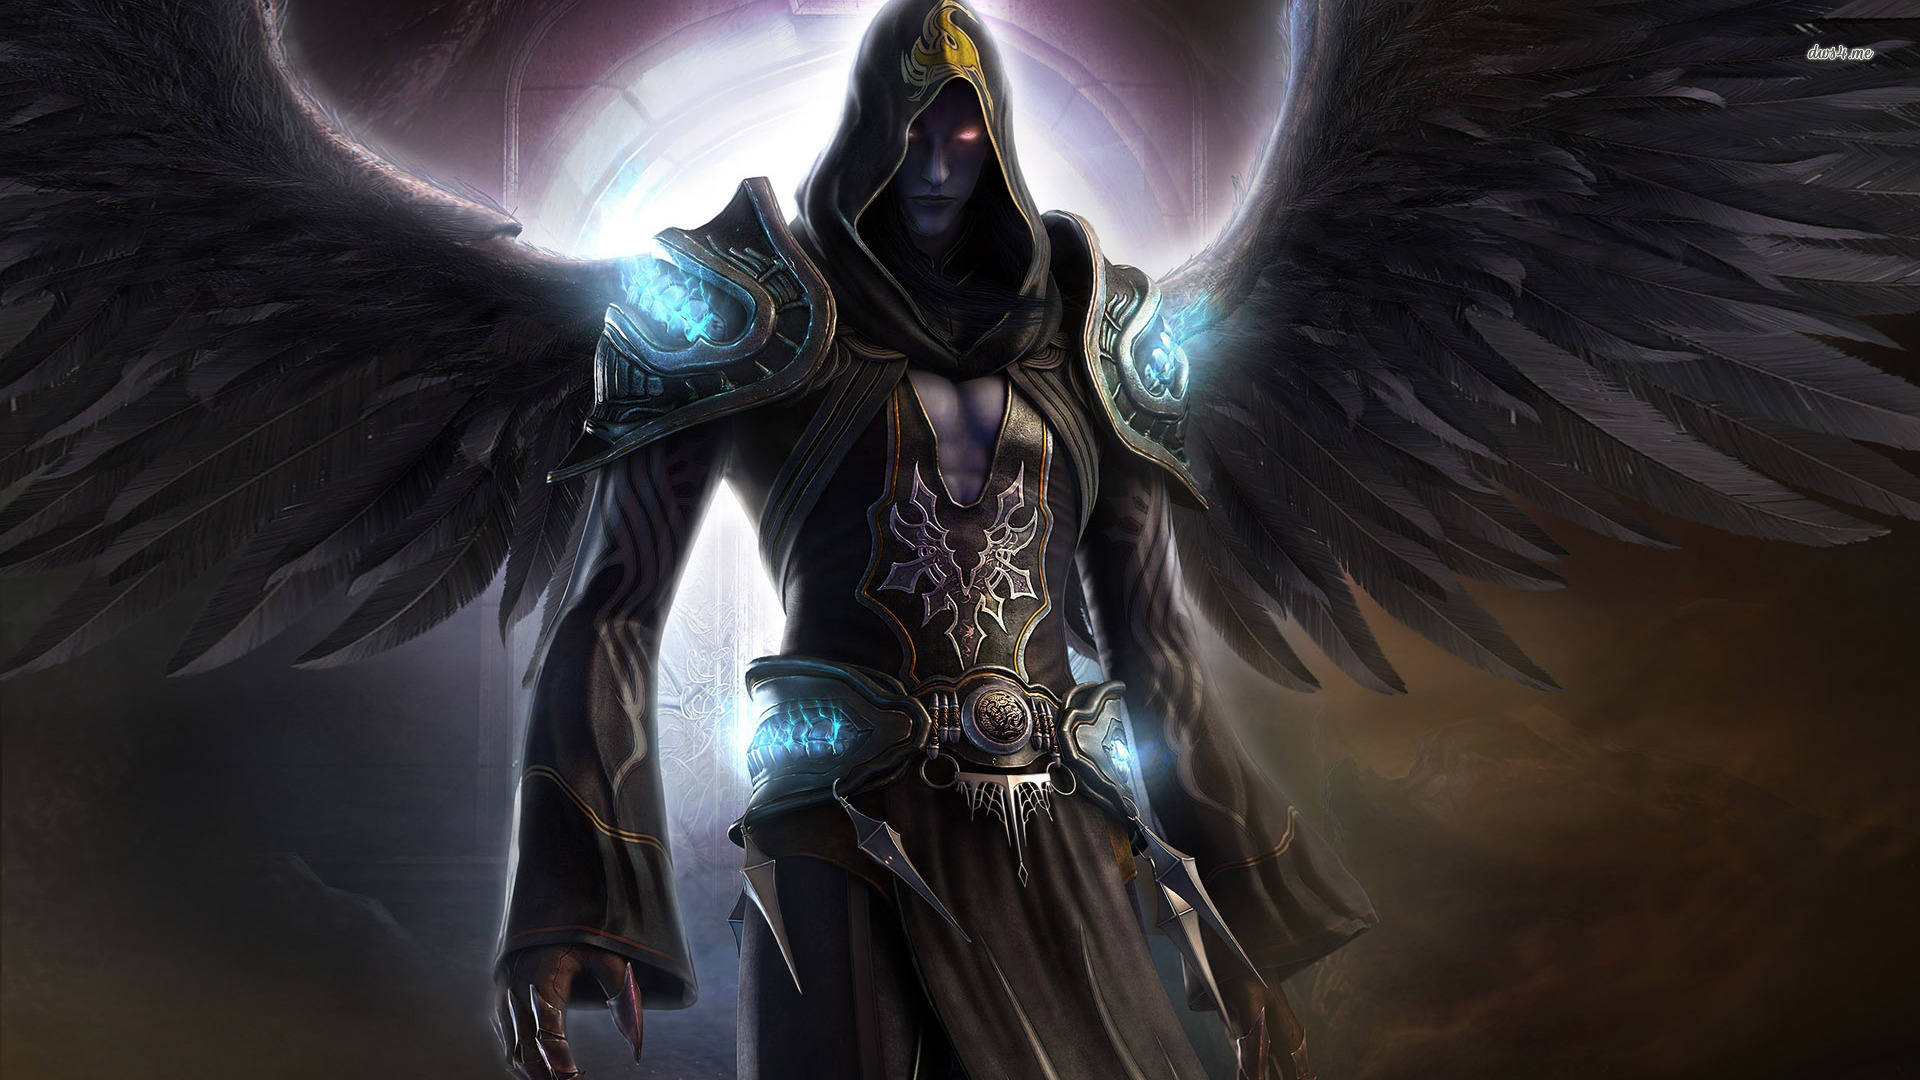 Exciting Black Angel Wallpaper 1920x1080px